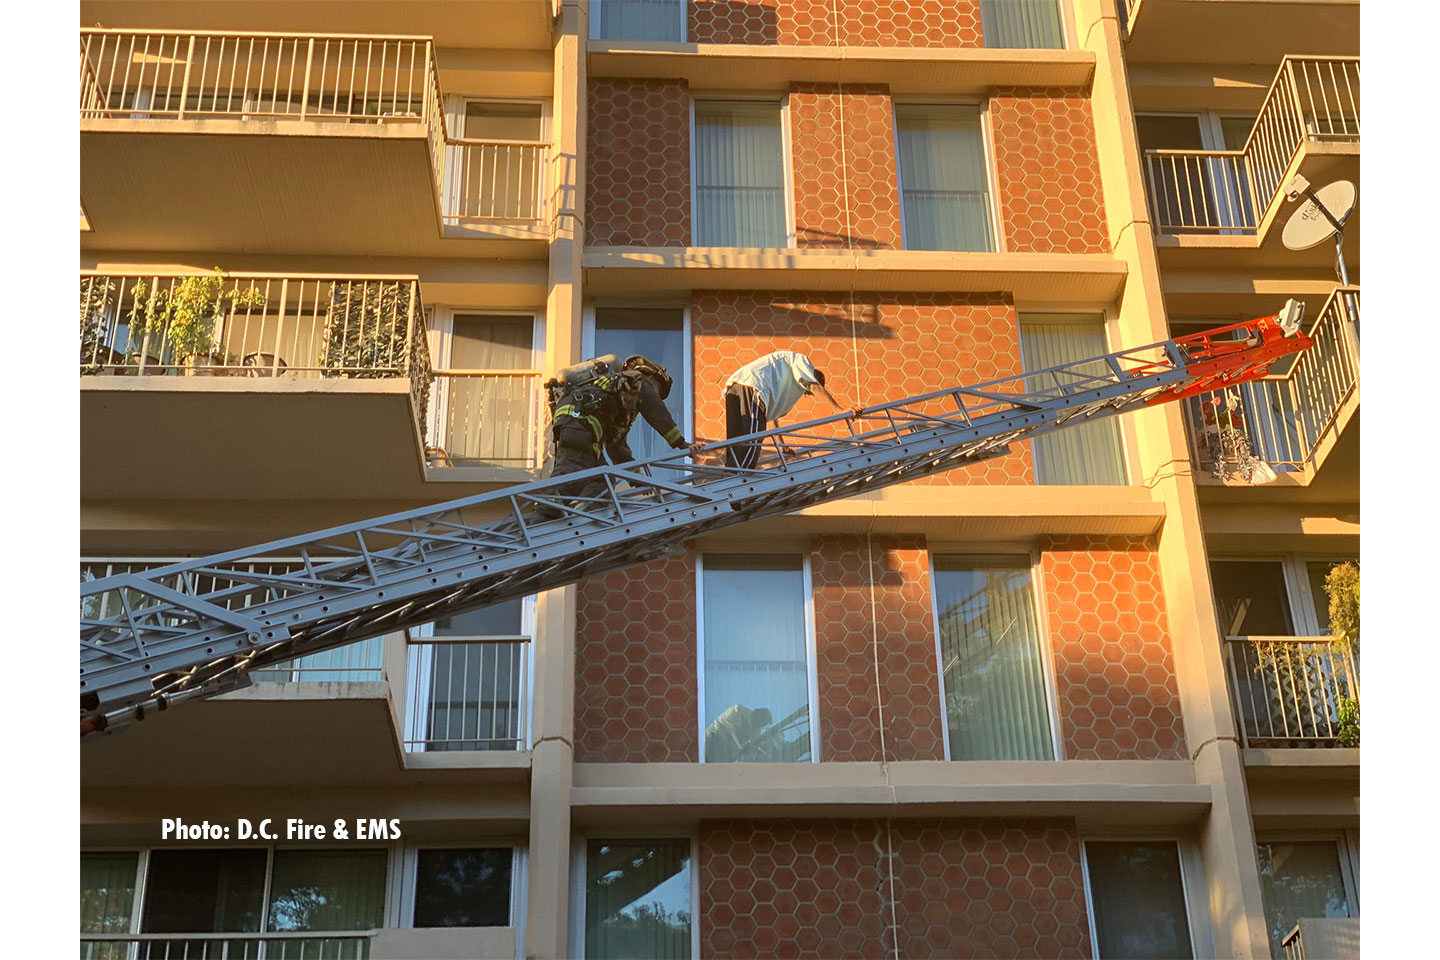 One person was rescued by a ladder from the apartment fire, and no injuries were reported.